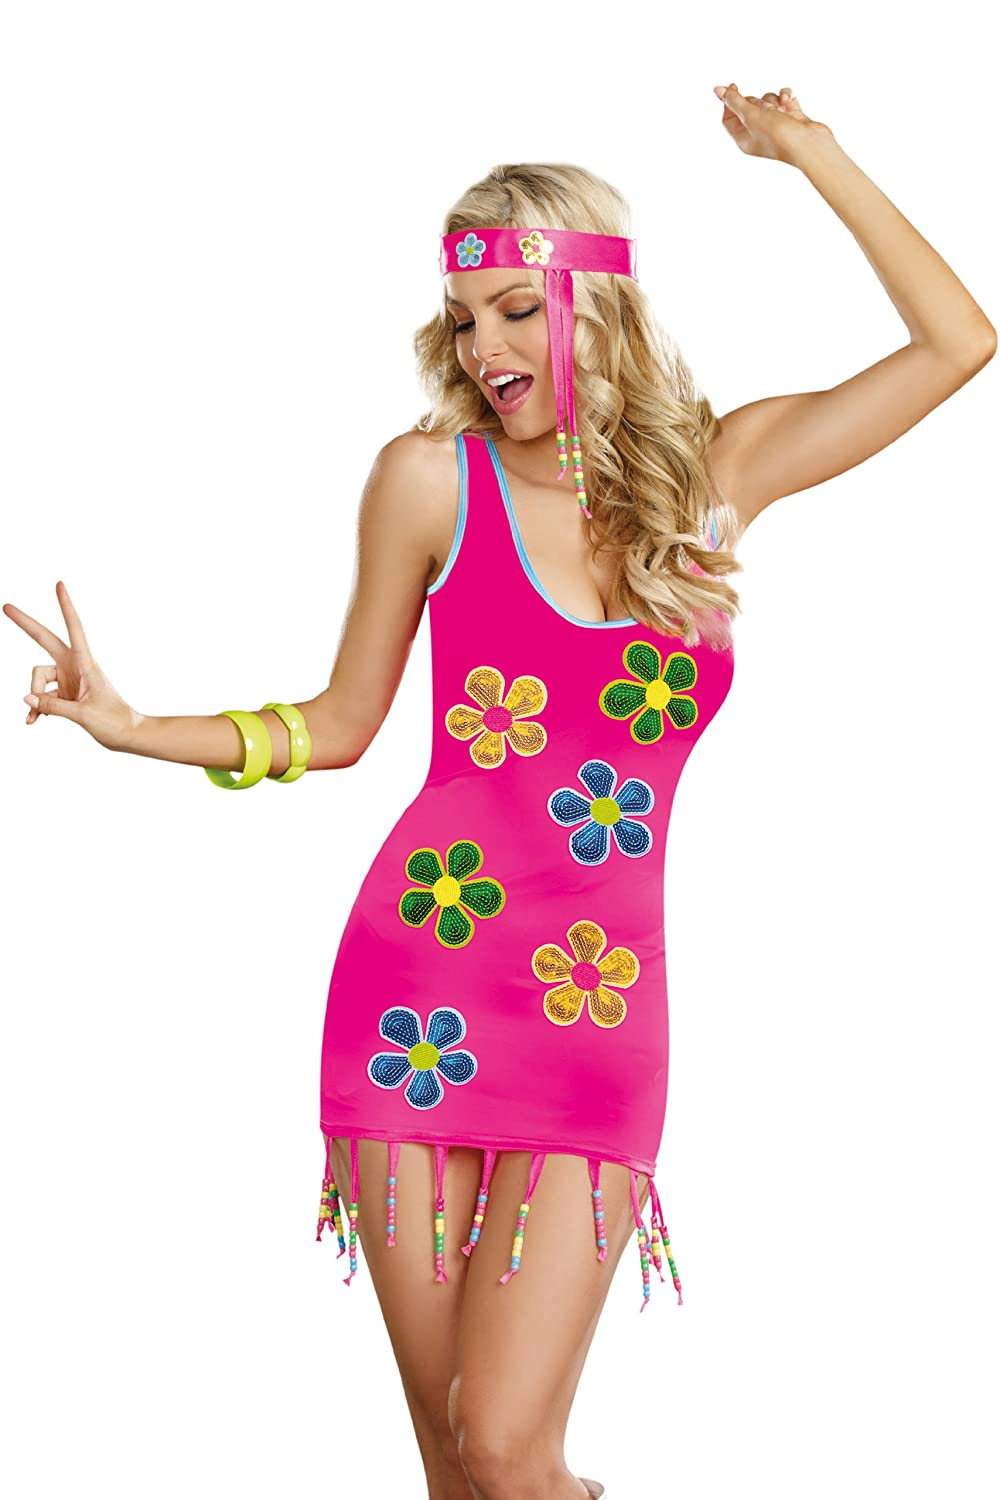 Vintage Inspired Halloween Costumes Dreamgirl Womens Groovy Baby Costume $24.43 AT vintagedancer.com